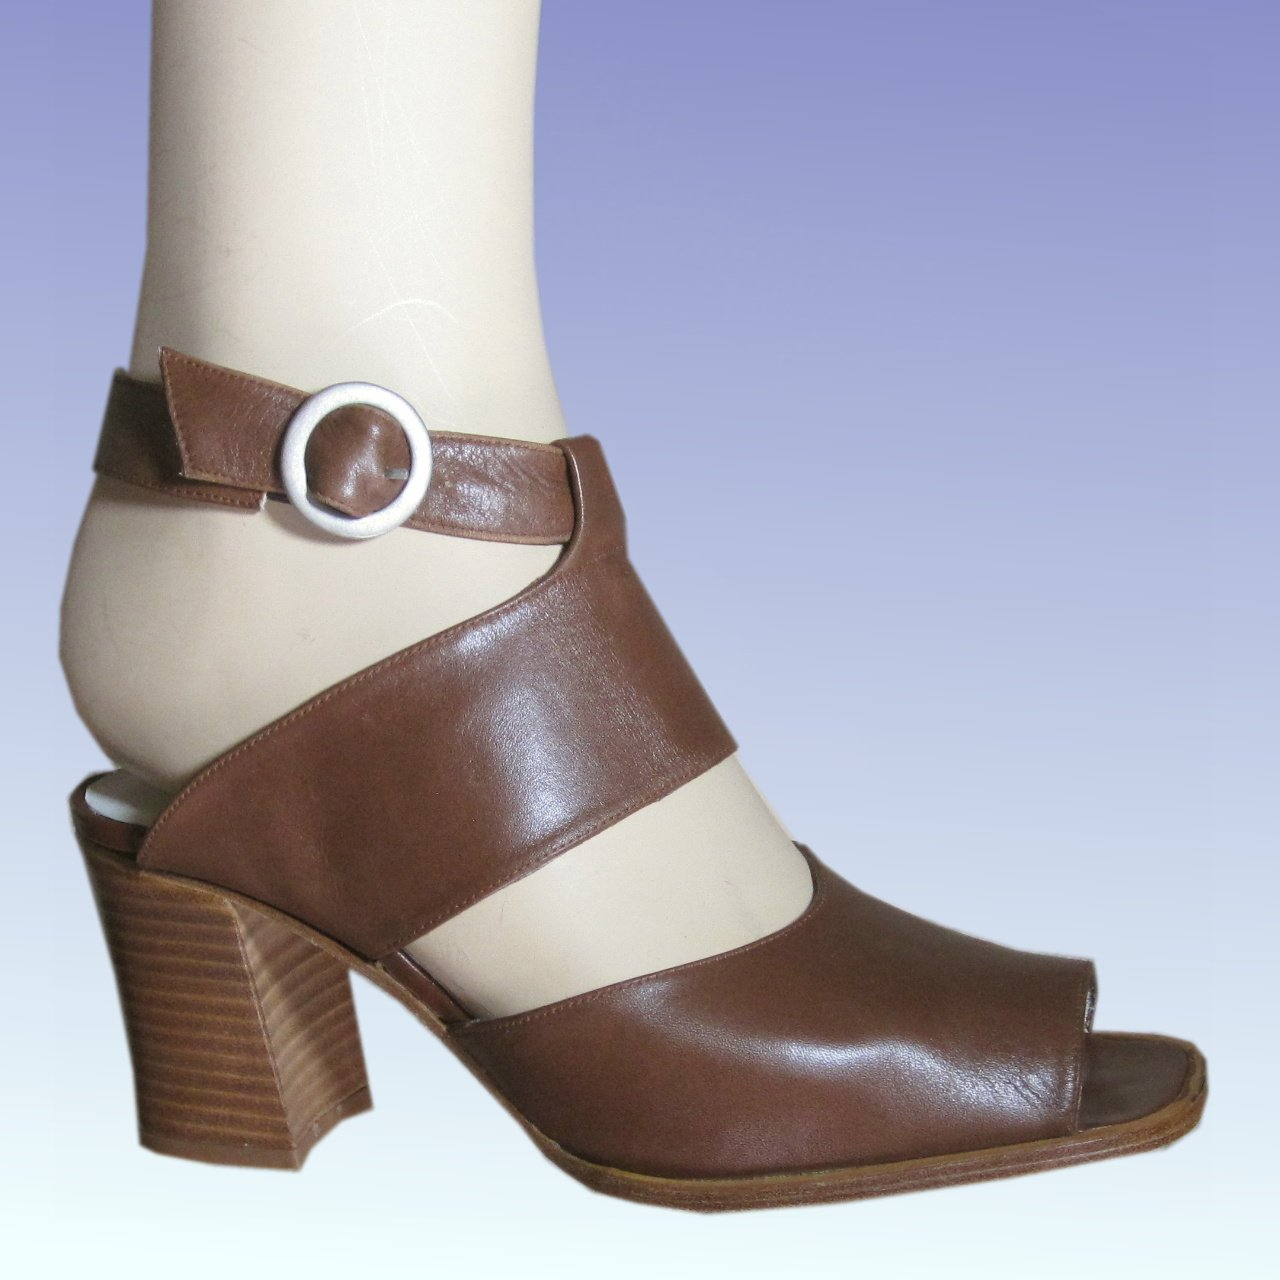 sz 7-.5 Chunky Ankle Strap Open Pumps SHoes by Amiana  $22.99 - List Price $145